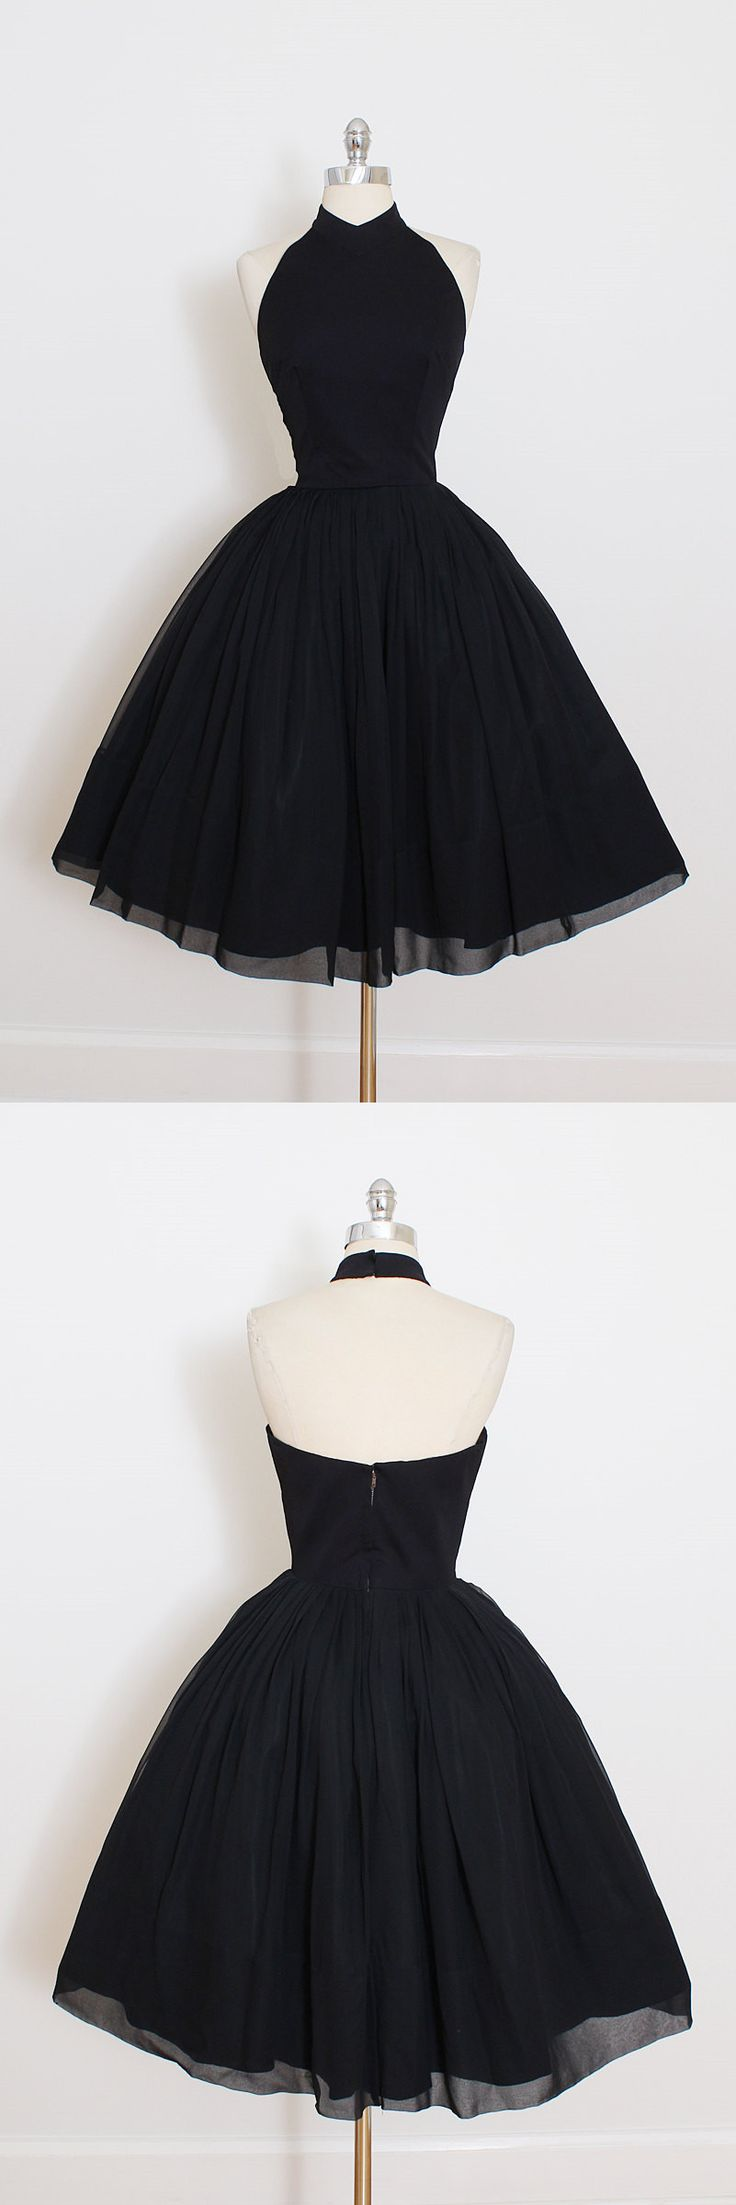 dd57eb47af9349f34266dabe8514dfe7--short-black-prom-dresses-black-party-dresses.jpg